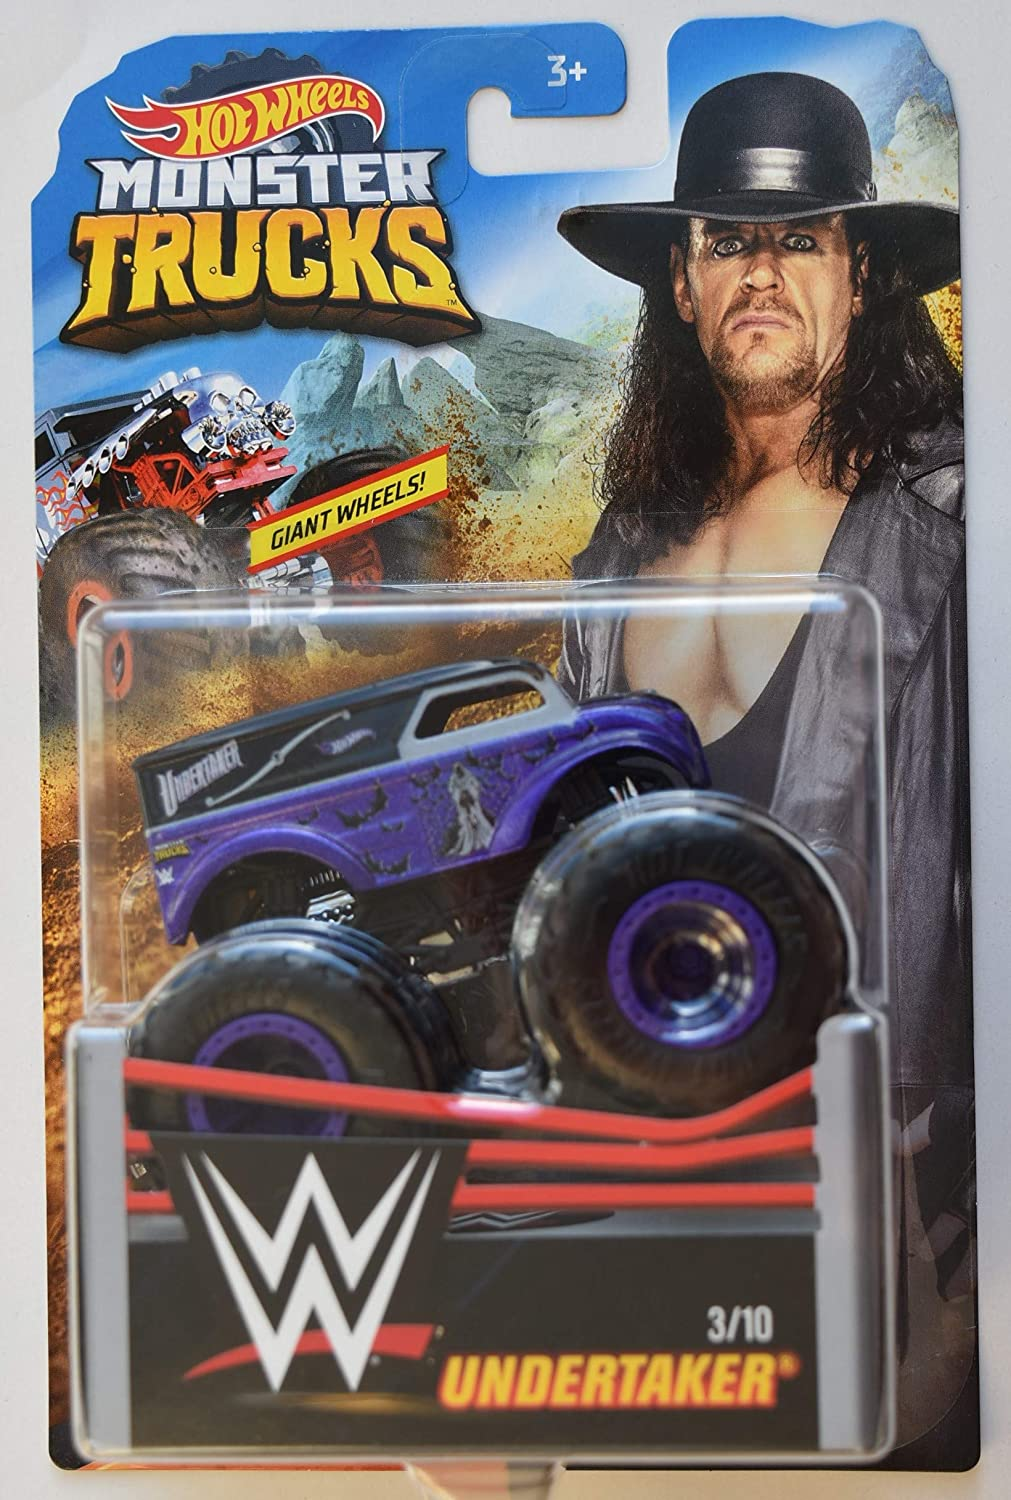 Amazon Com Hot Wheels Monster Trucks 1 64 Scale Undertaker 3 10 Giant Wheels Toys Games